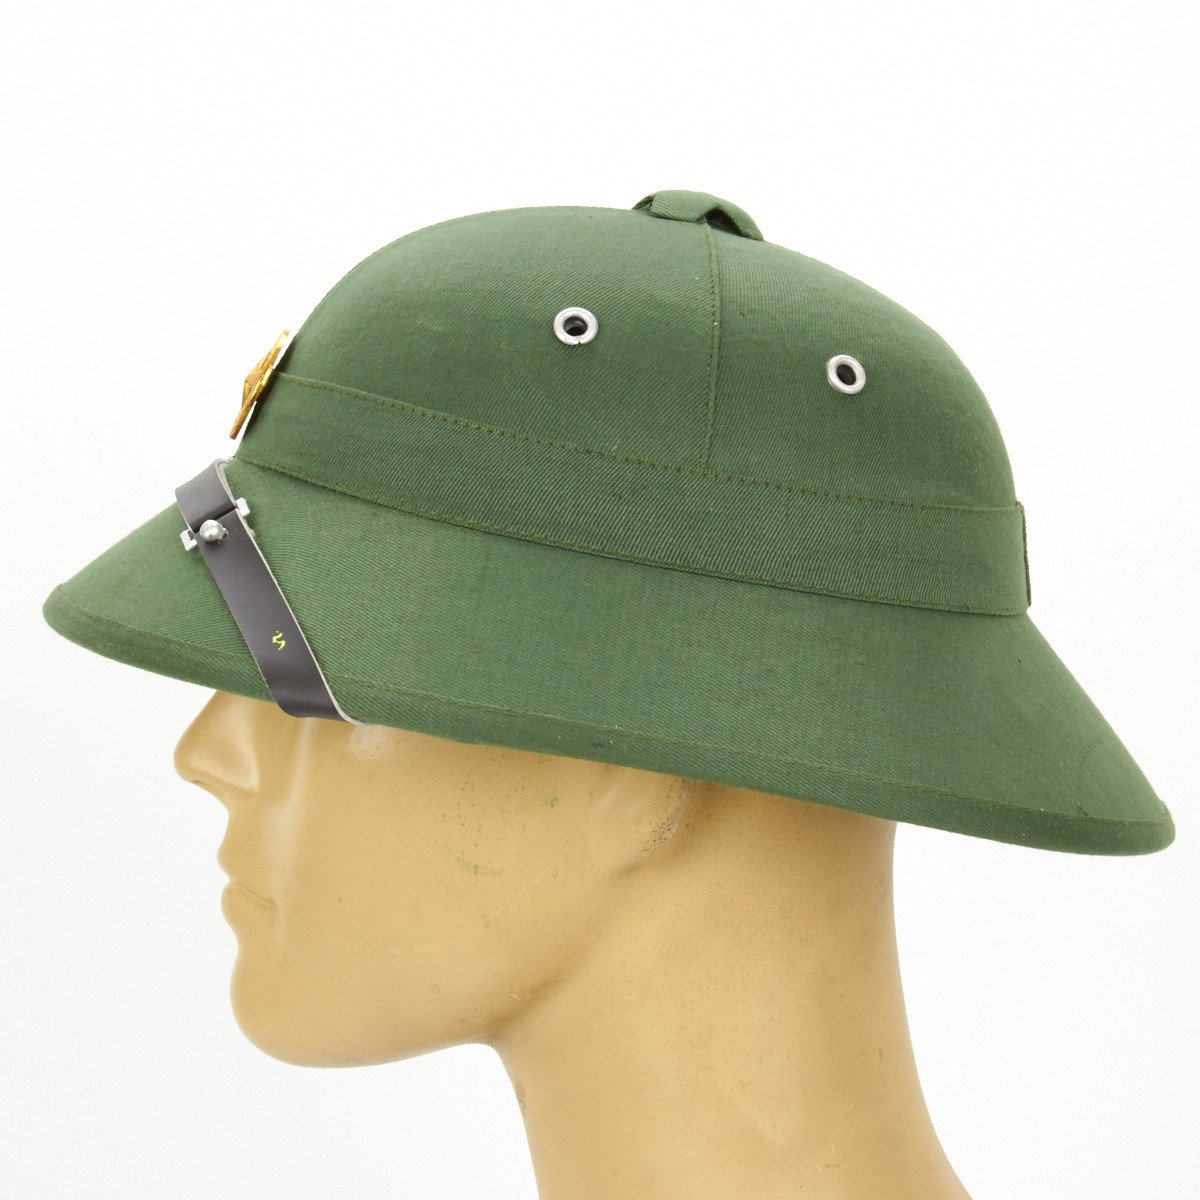 43e7a7d129f86 North Vietnamese Army Viet Cong Pith Helmet with Red Star Badge ...